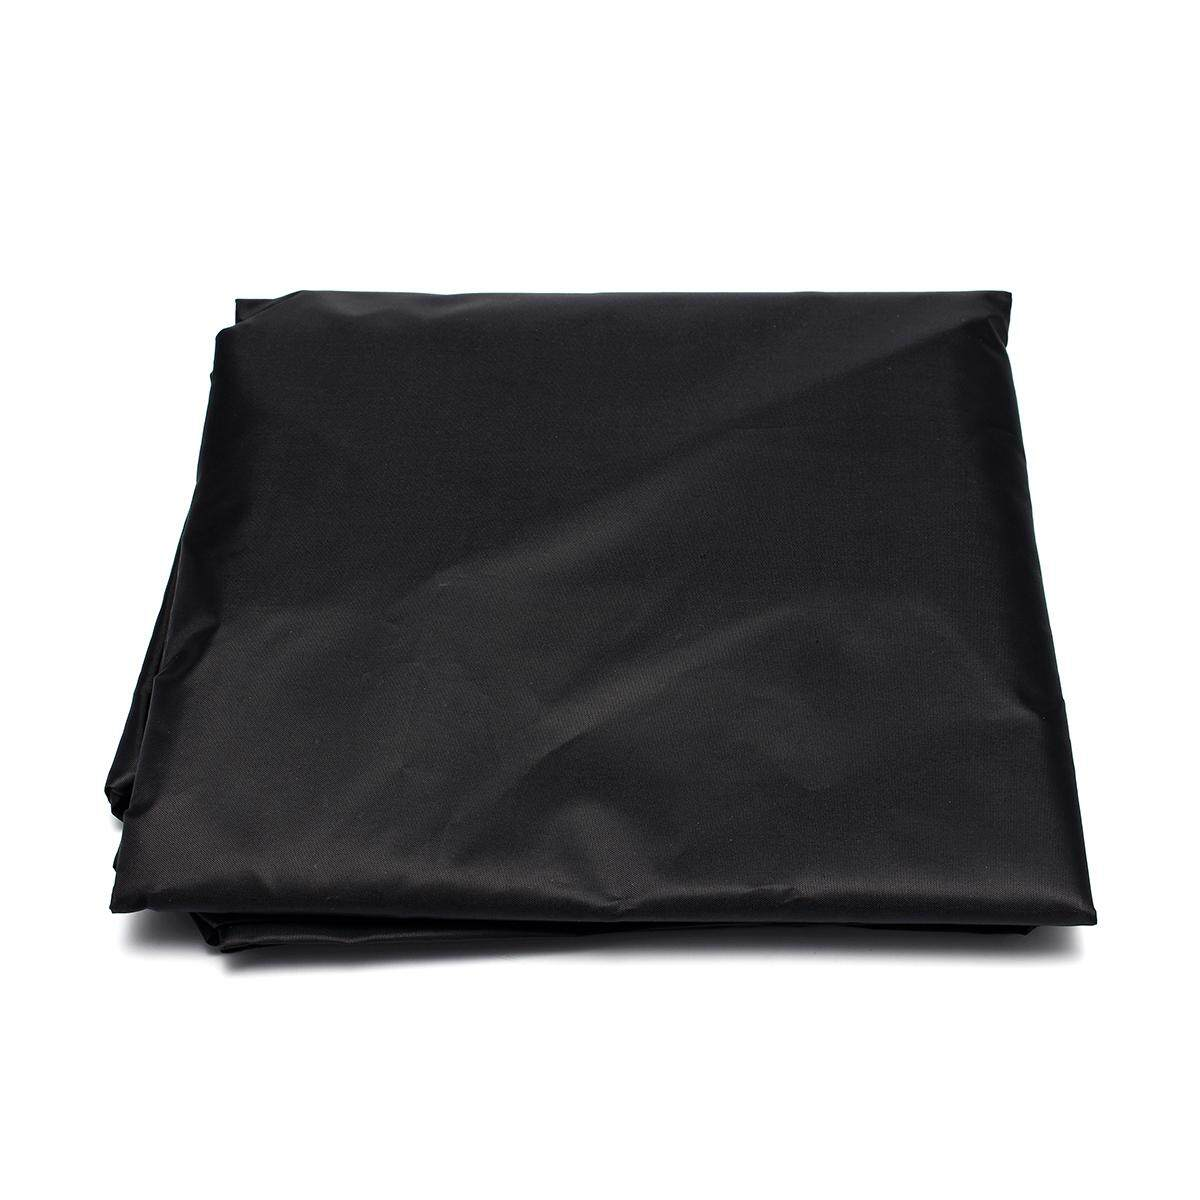 Durable 210D Generator Accessories Waterproof Dust Cover Protection Universal#66*51*51cm